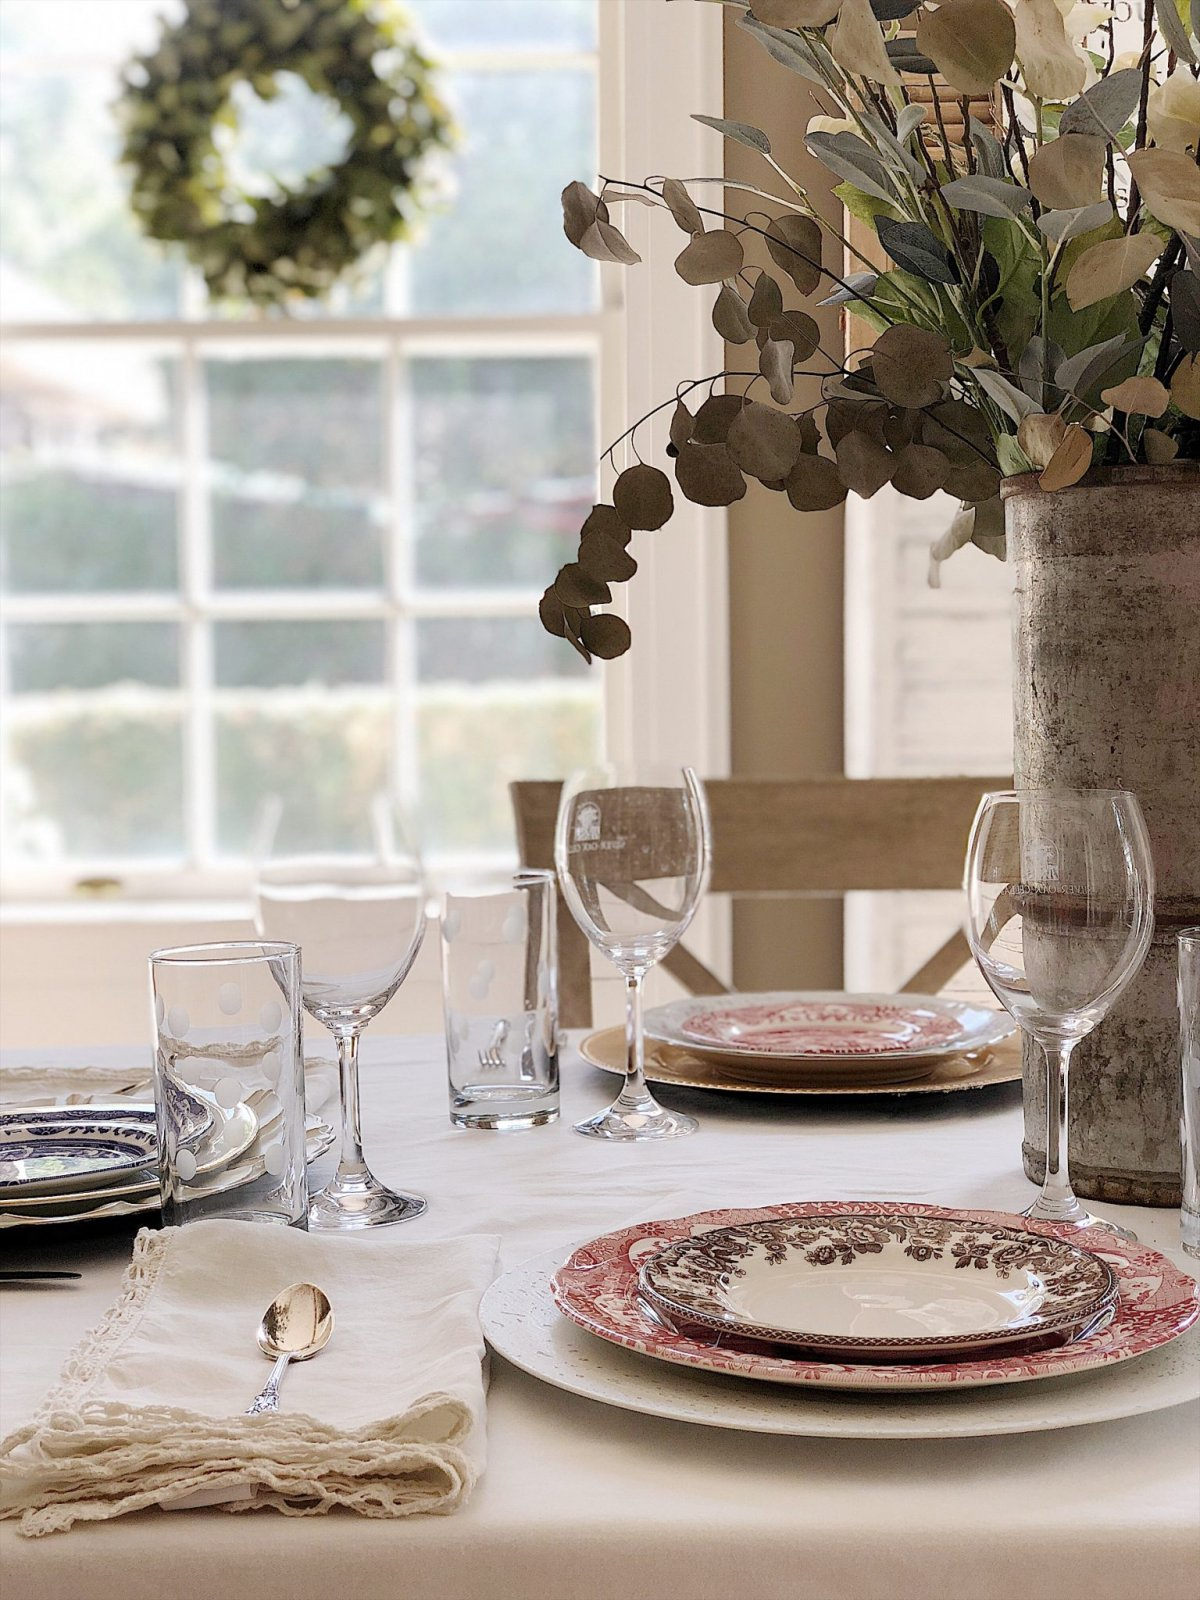 Today I am sharing how to mix new and old china patterns when you set the table.